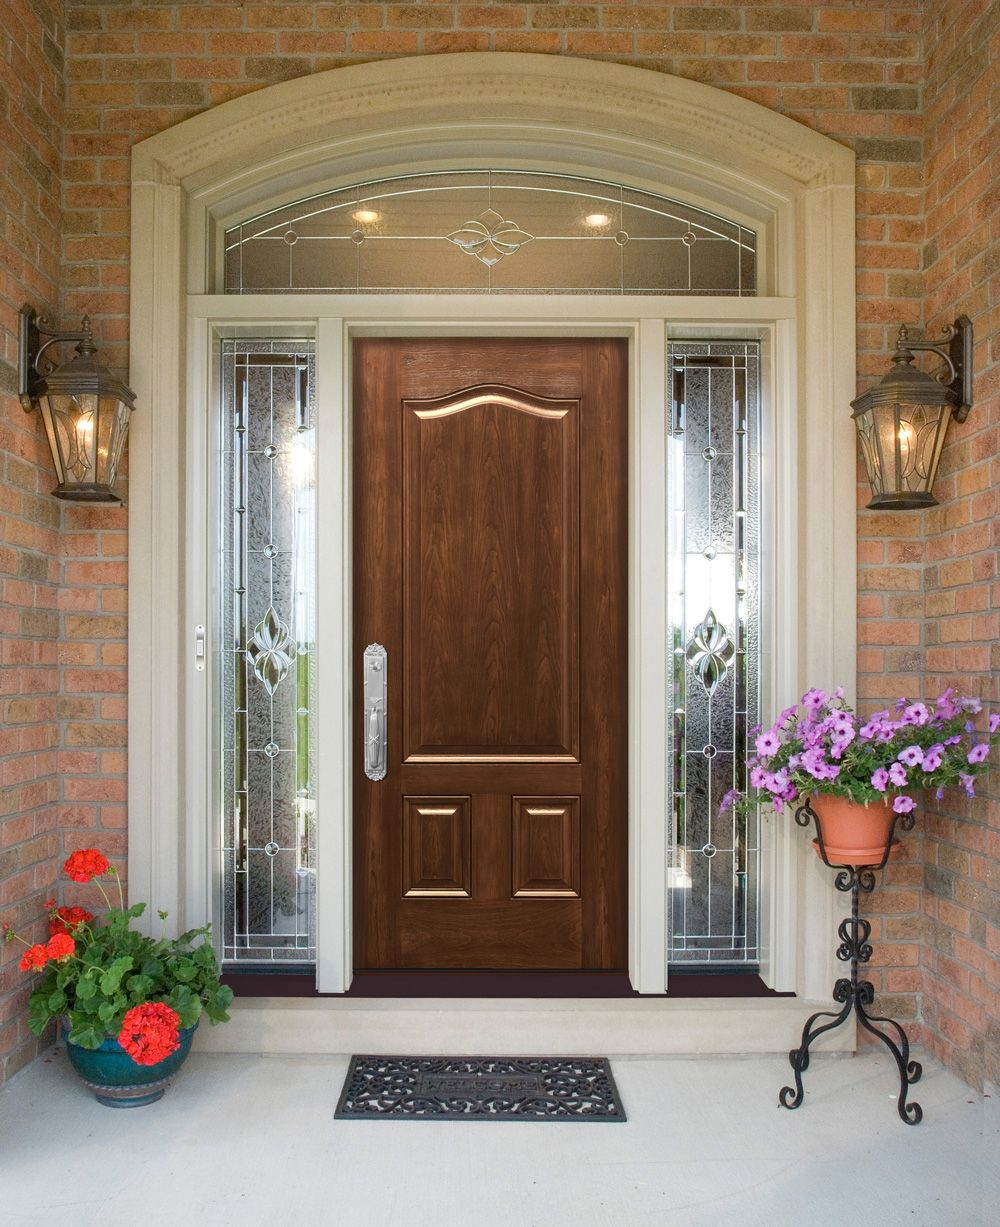 Single french door interior beveled glass transom window for single wood entry door with